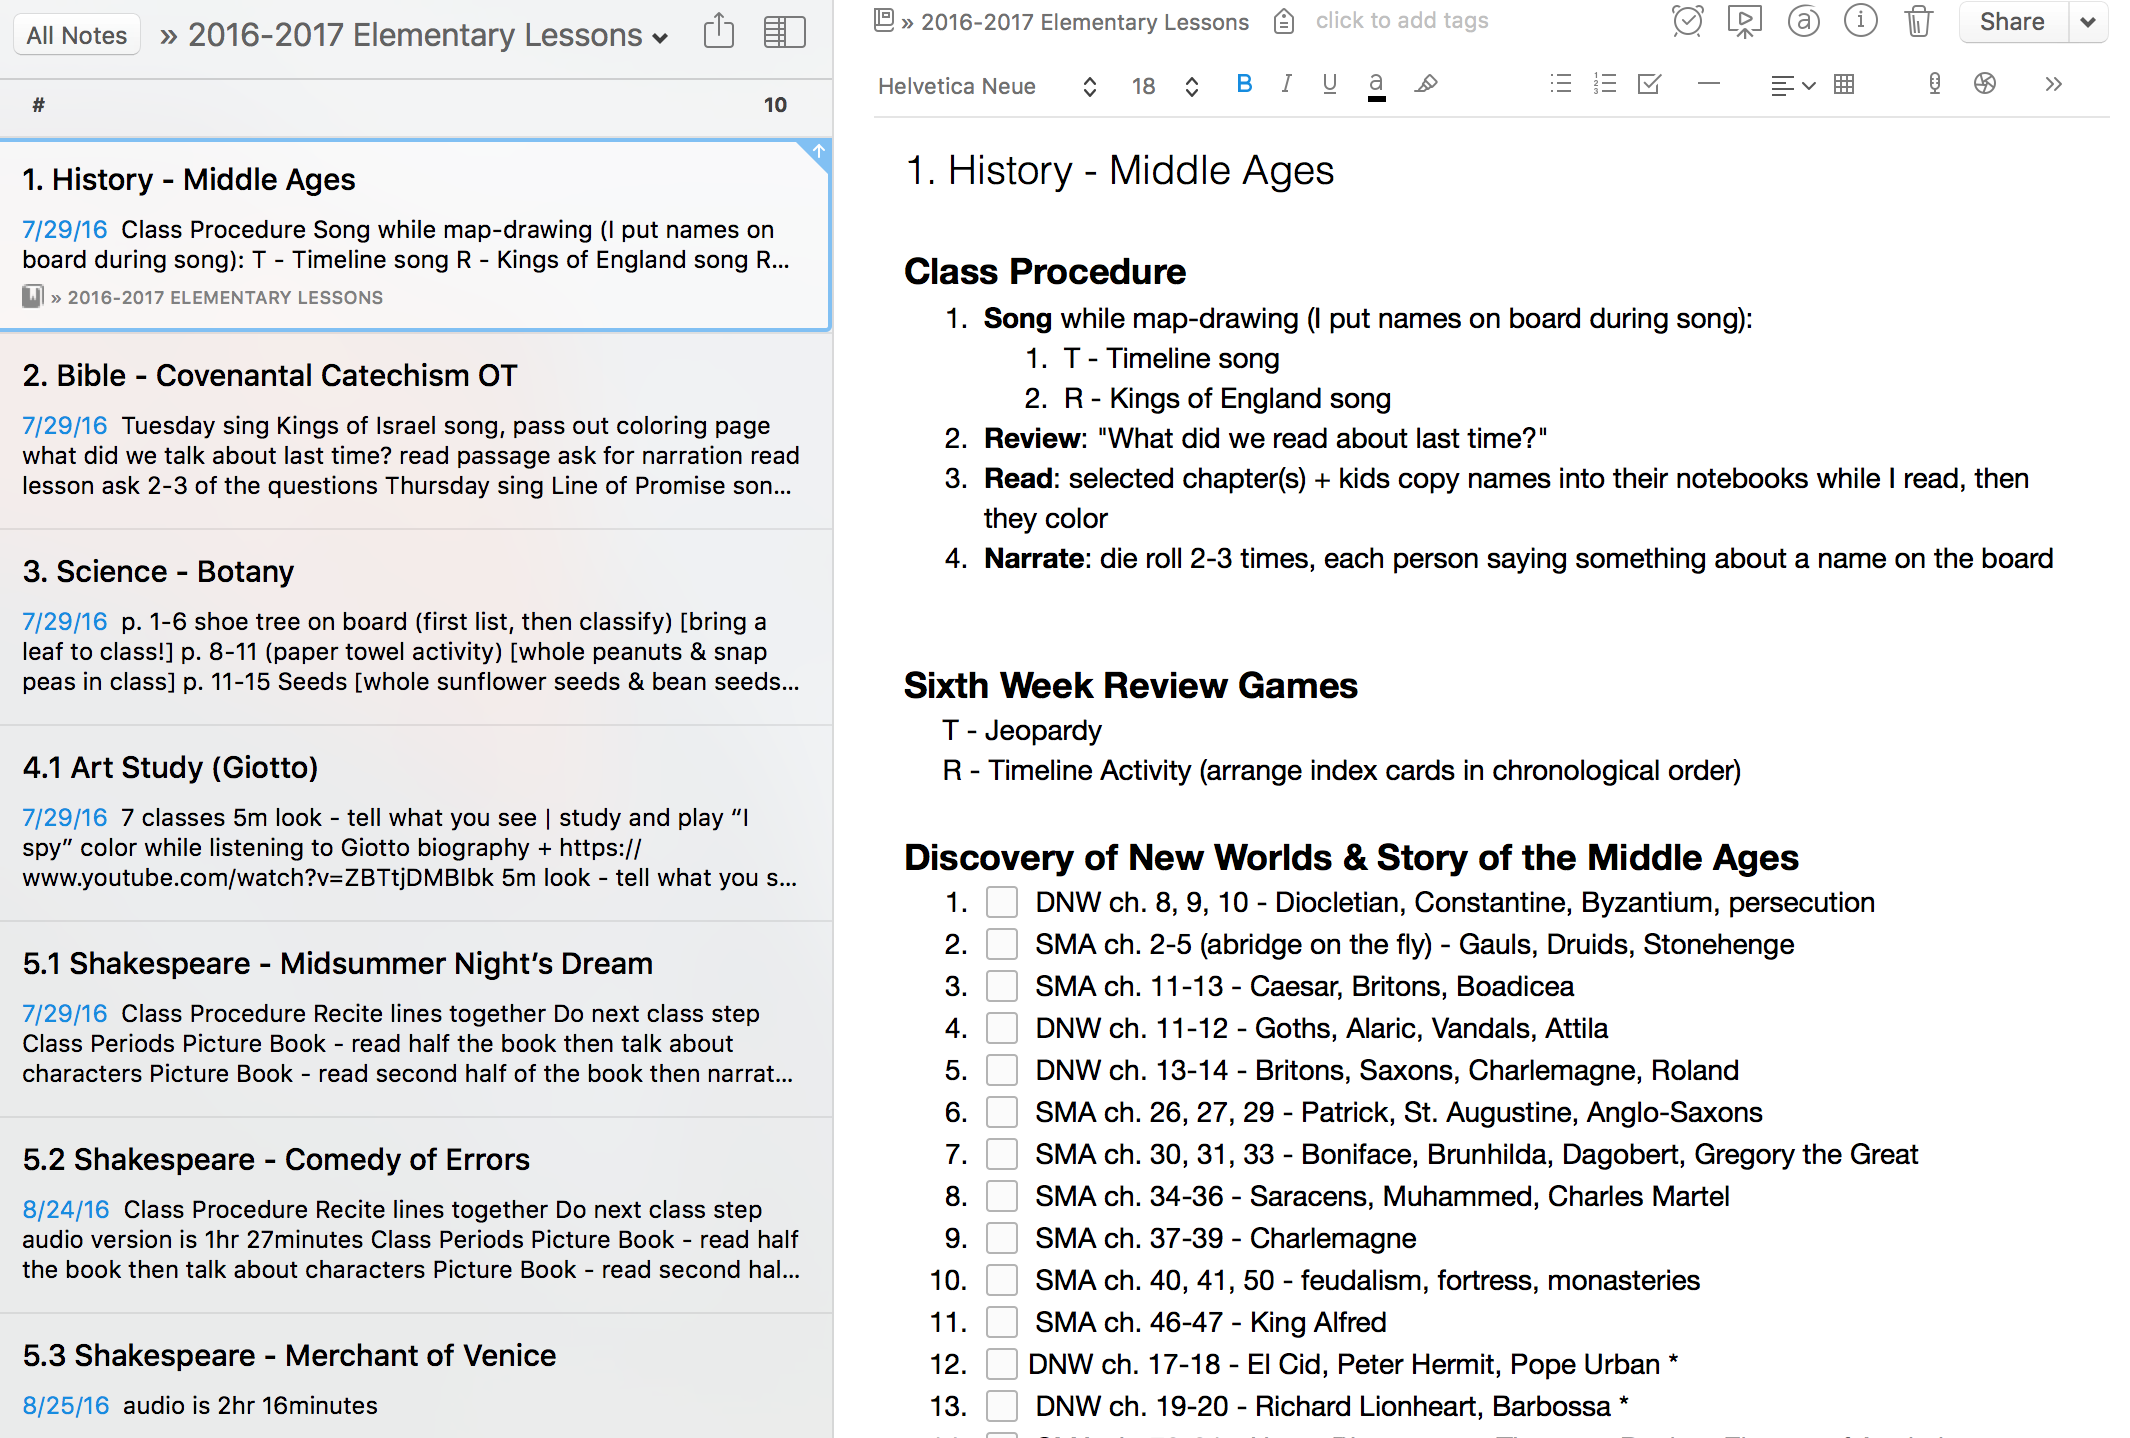 homeschool lesson plans for middle ages history